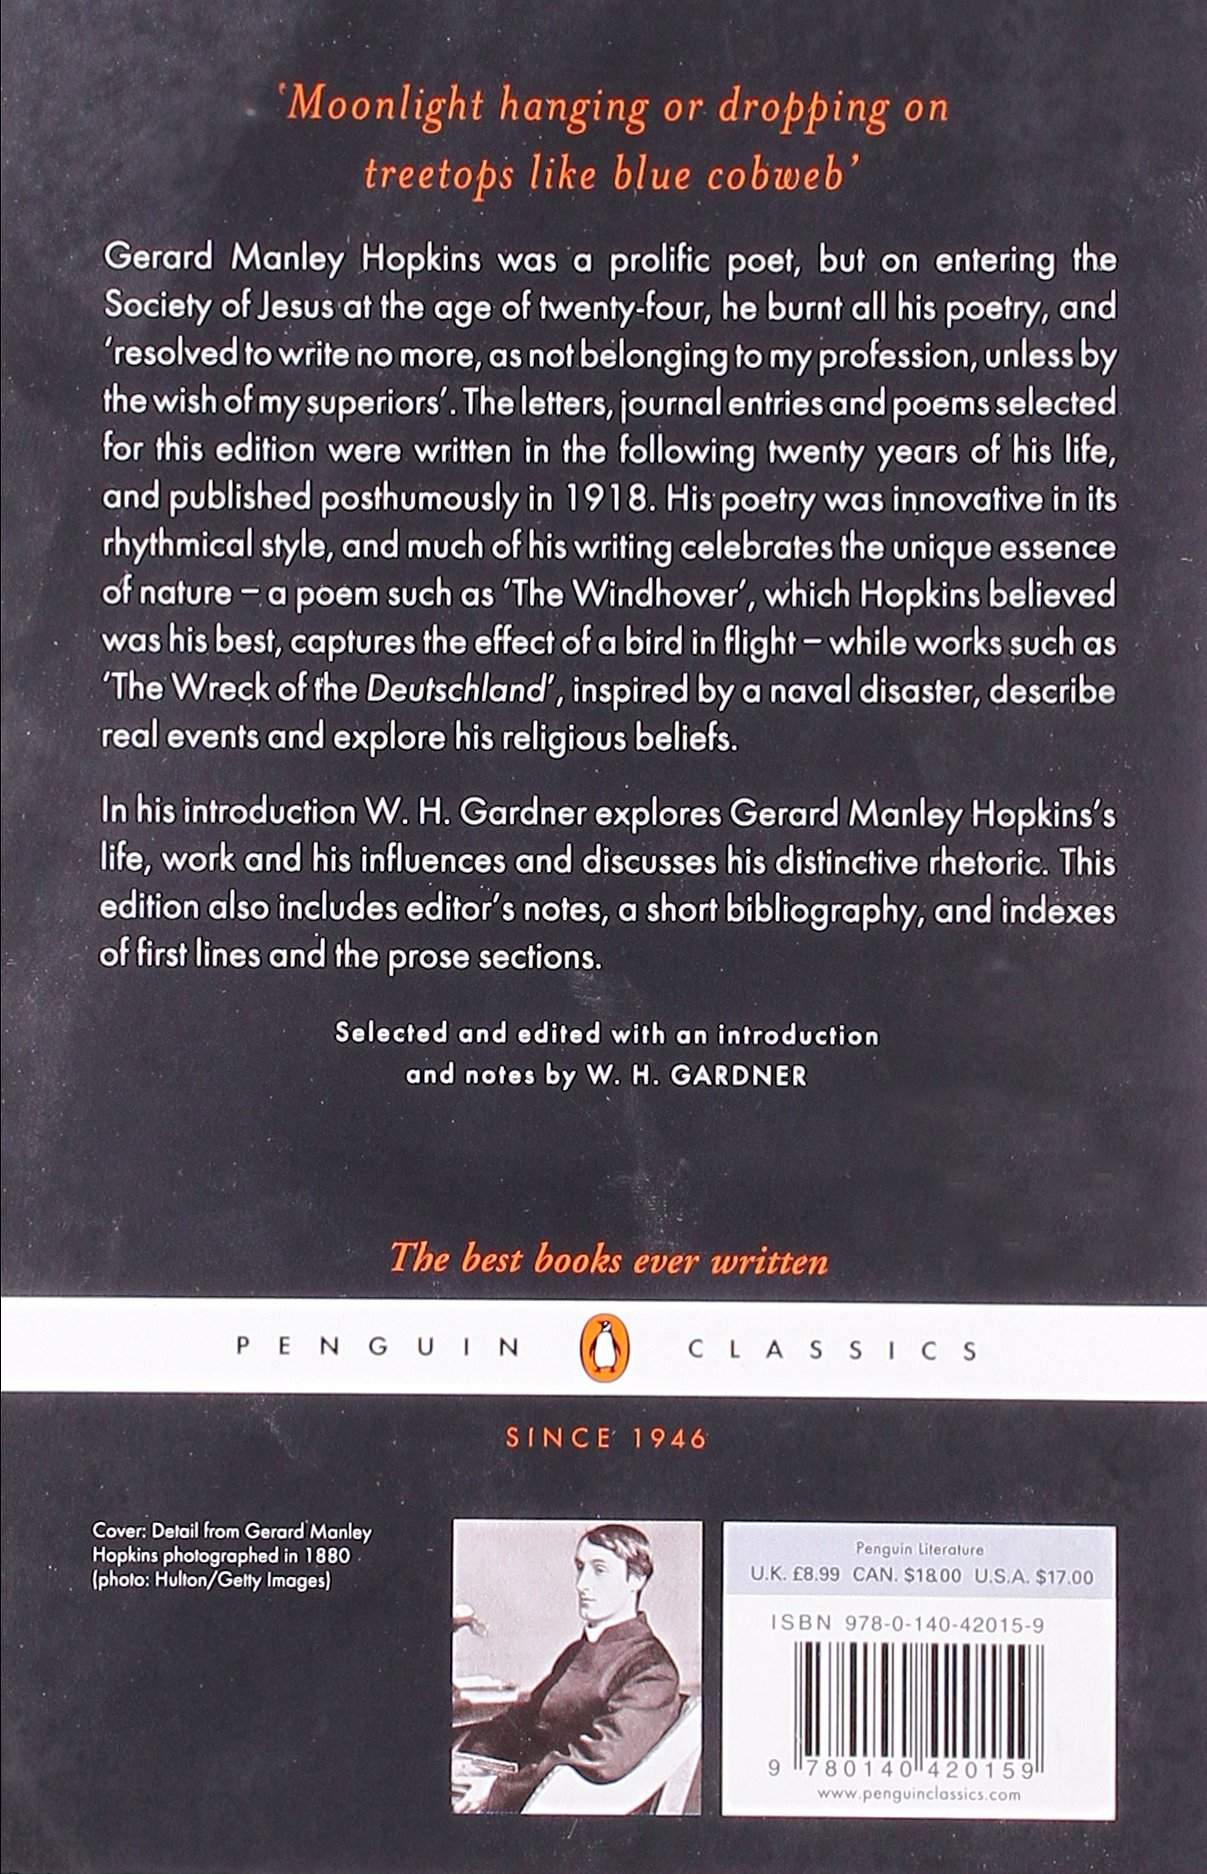 Poems and Prose (Penguin Classics): Gerard Manley Hopkins, W. H. Gardner: 9780140420159: Amazon.com: Books